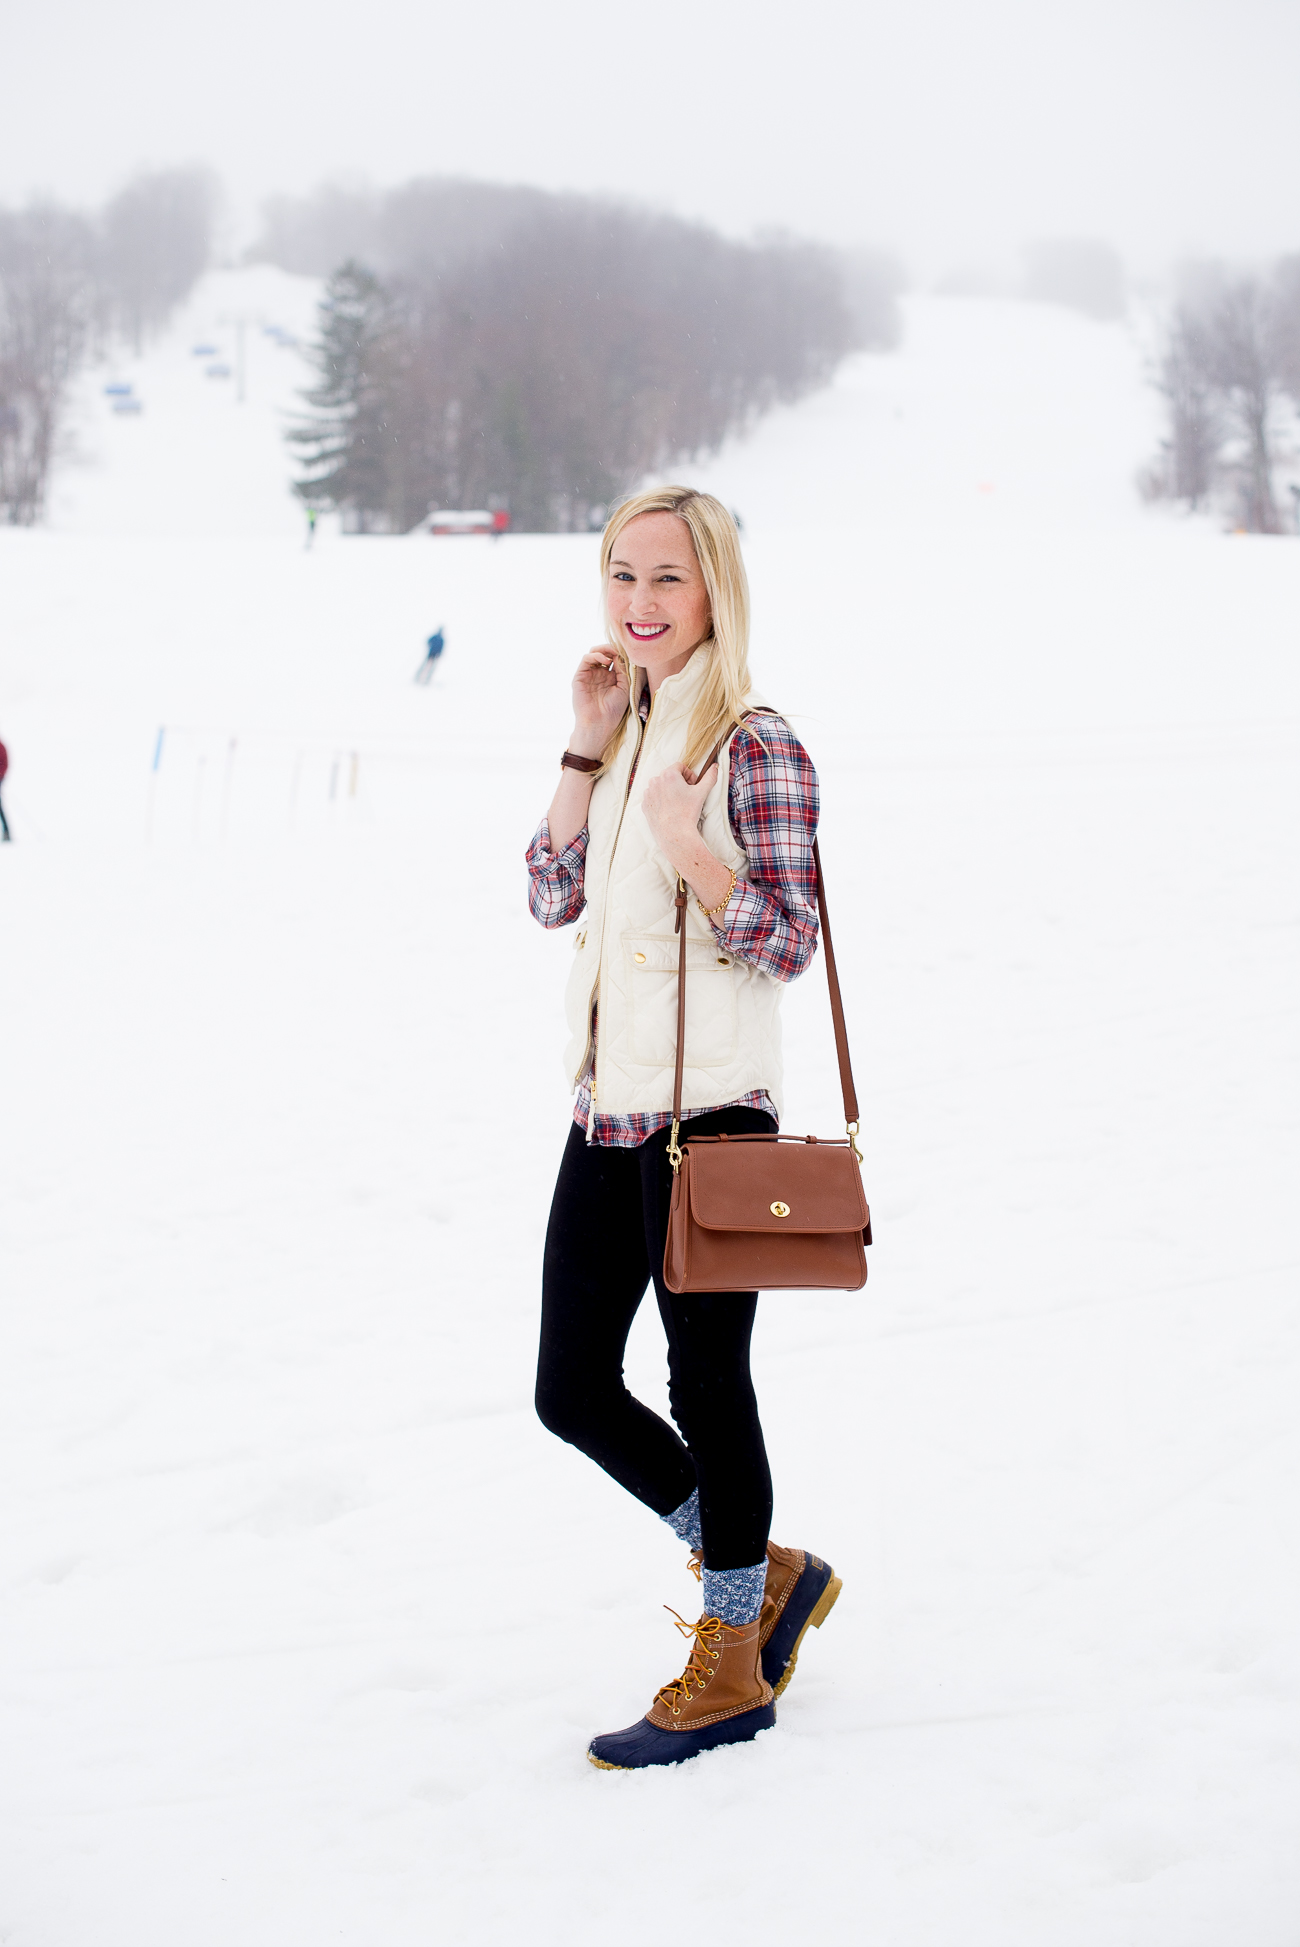 J.Crew Excursion Vest LL Bean Boots-16